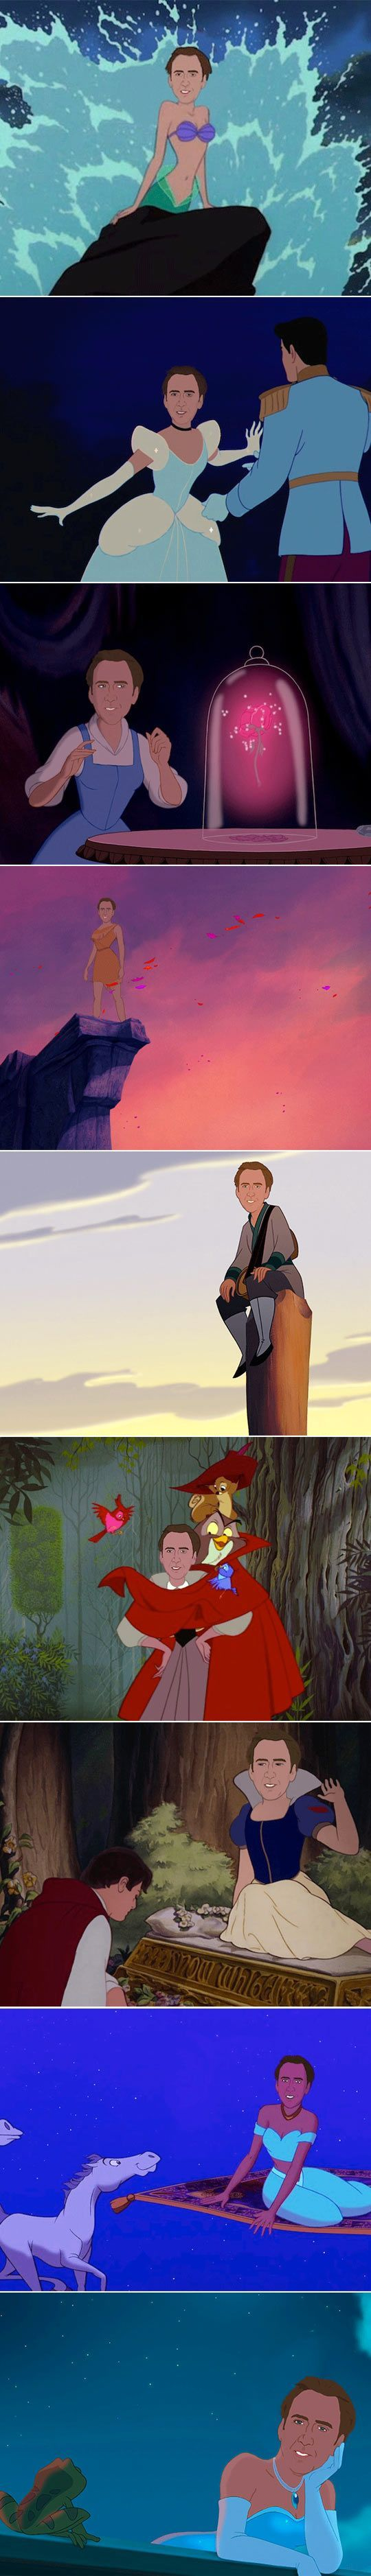 Princess Nicolas Cage鈥?I will never unsee this. XD lol | See more about disney princesses, disney movies and nicolas cage.